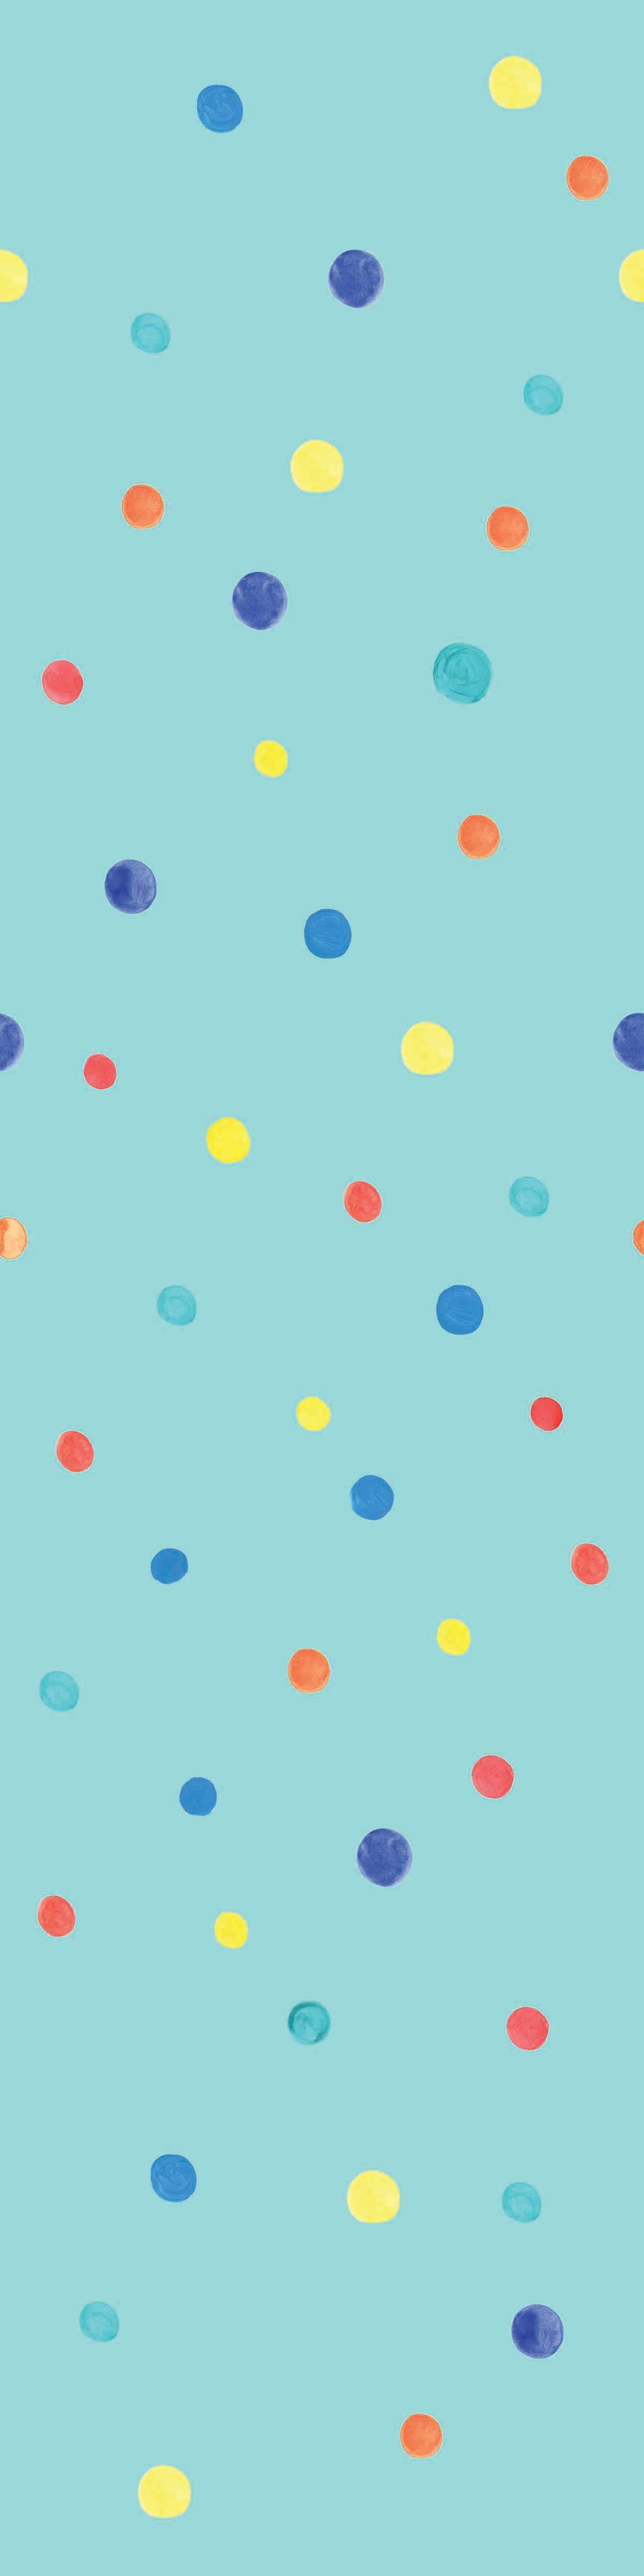 Peel and stick wallpaper colorful polka dot pattern